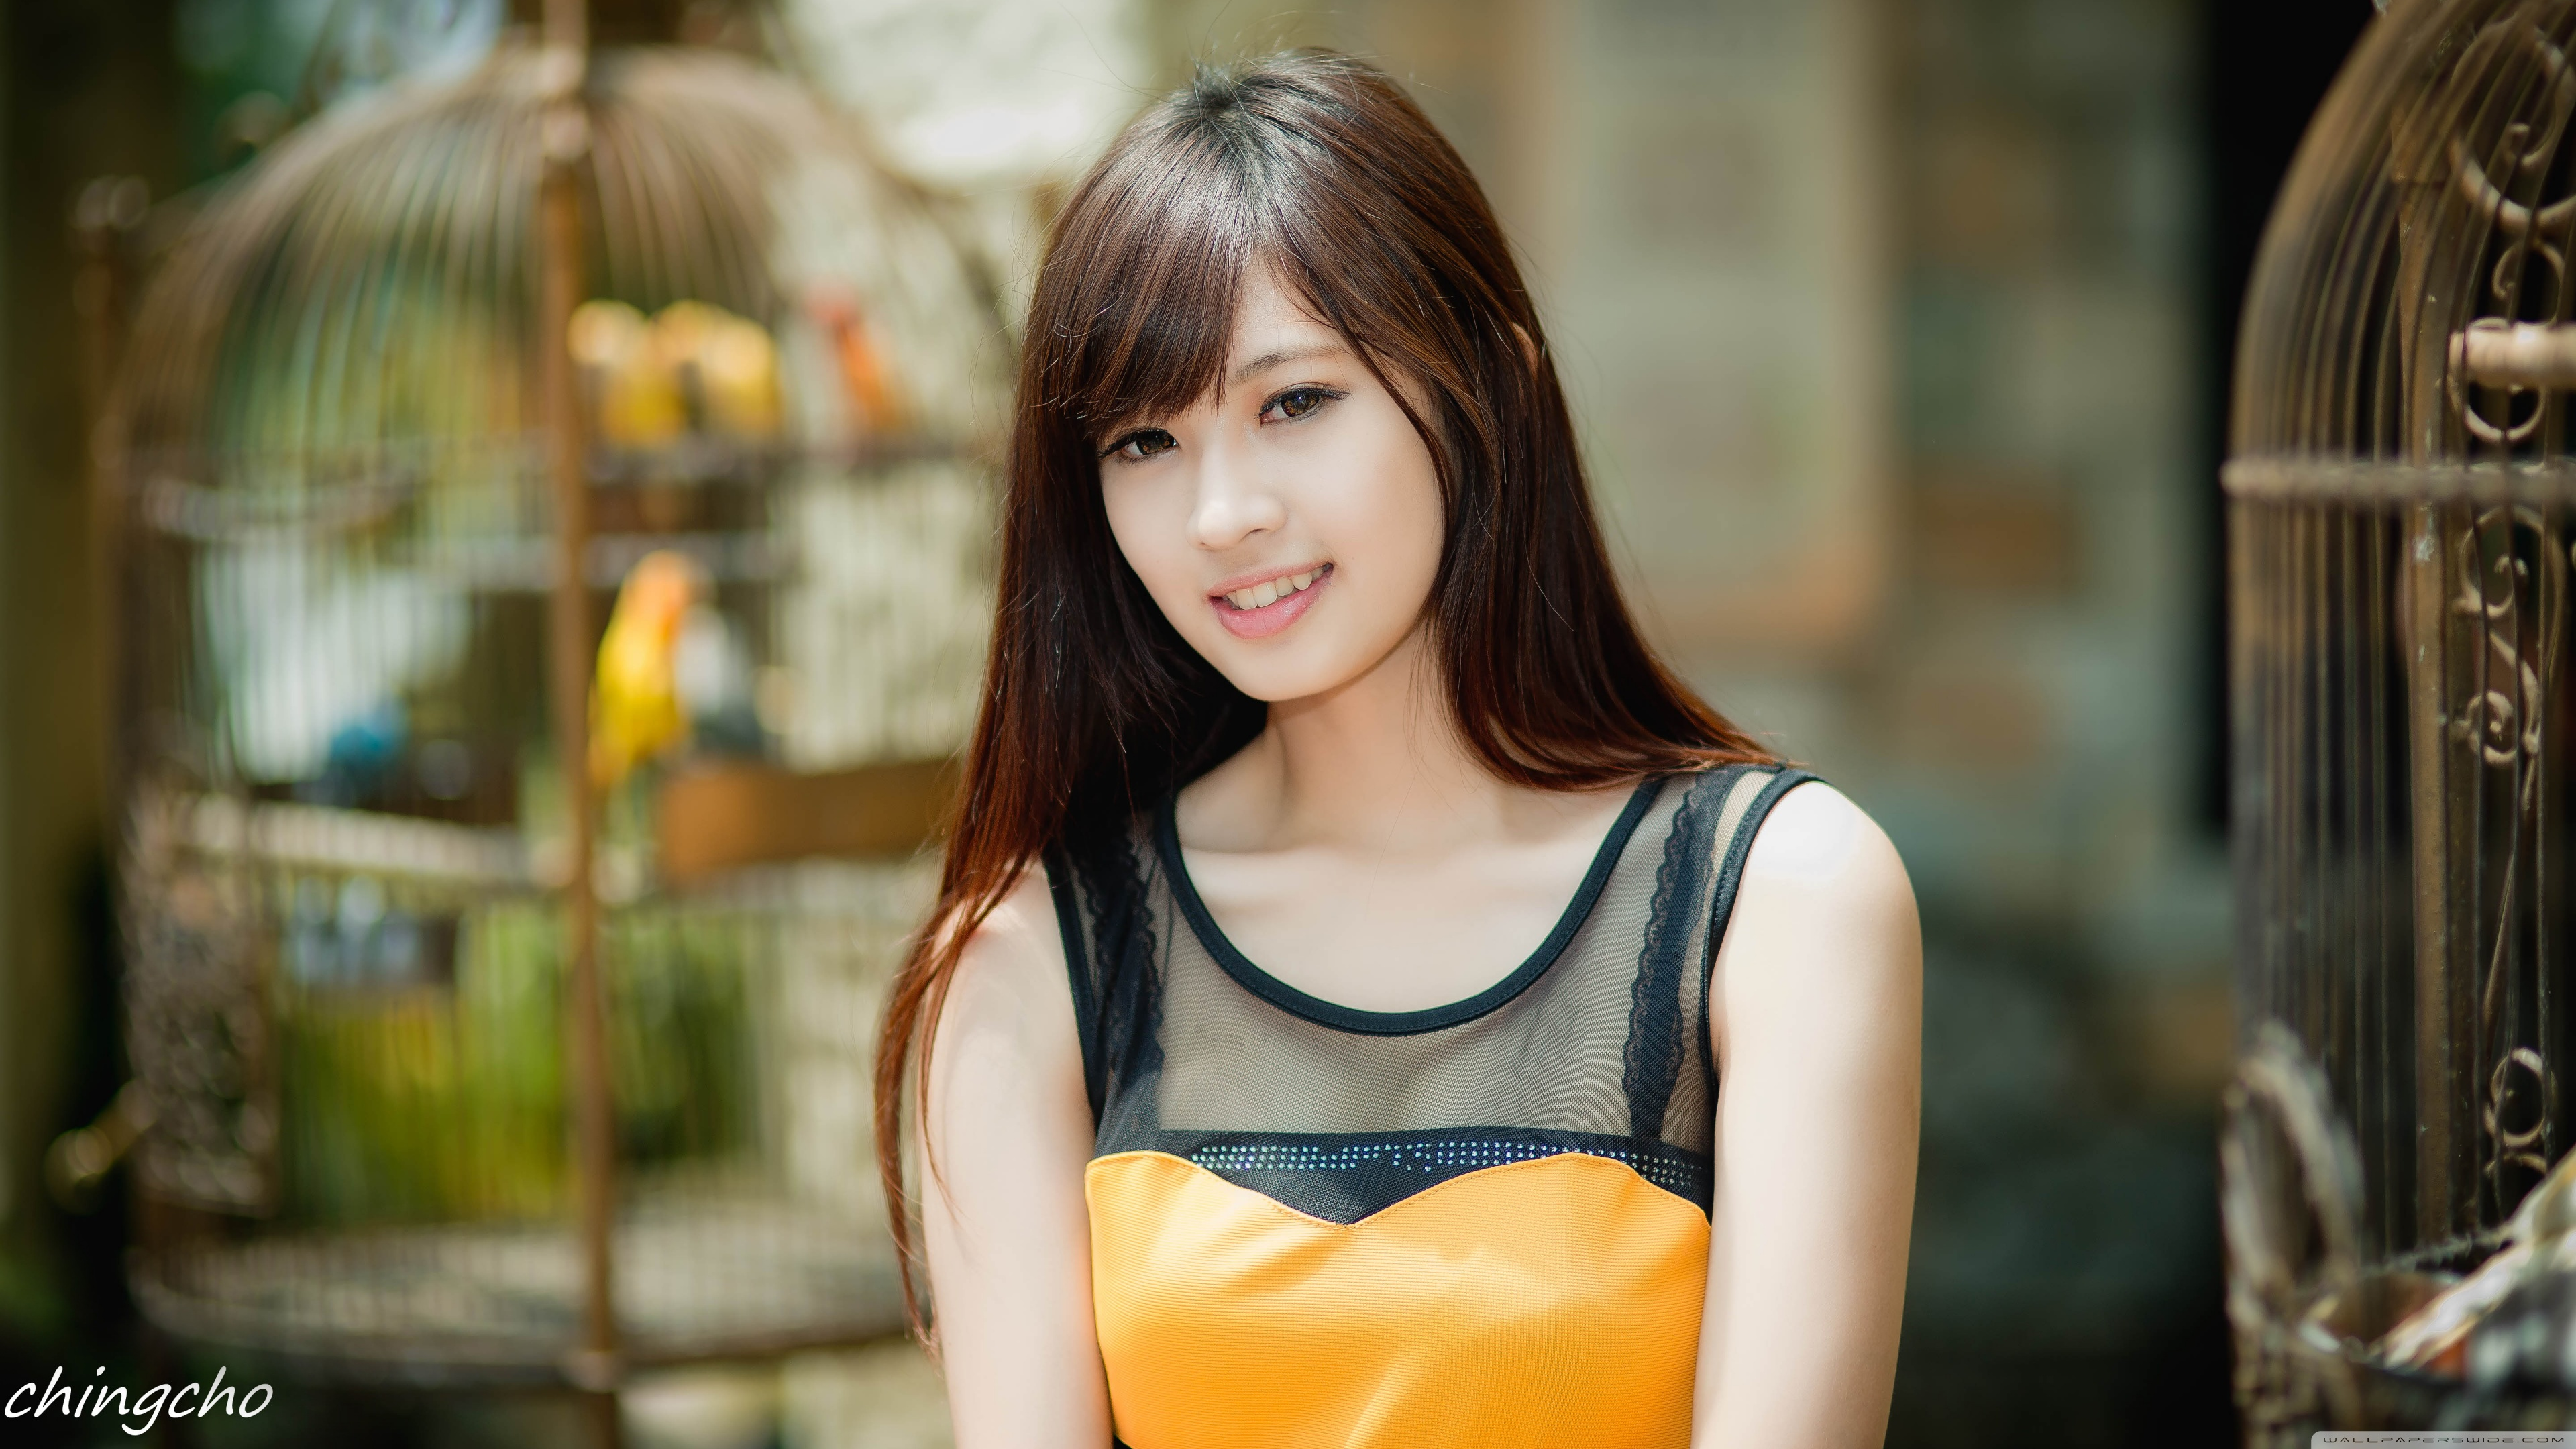 Asian 4k Ultra Hd Wallpaper And Background - Asian Model Girl , HD Wallpaper & Backgrounds